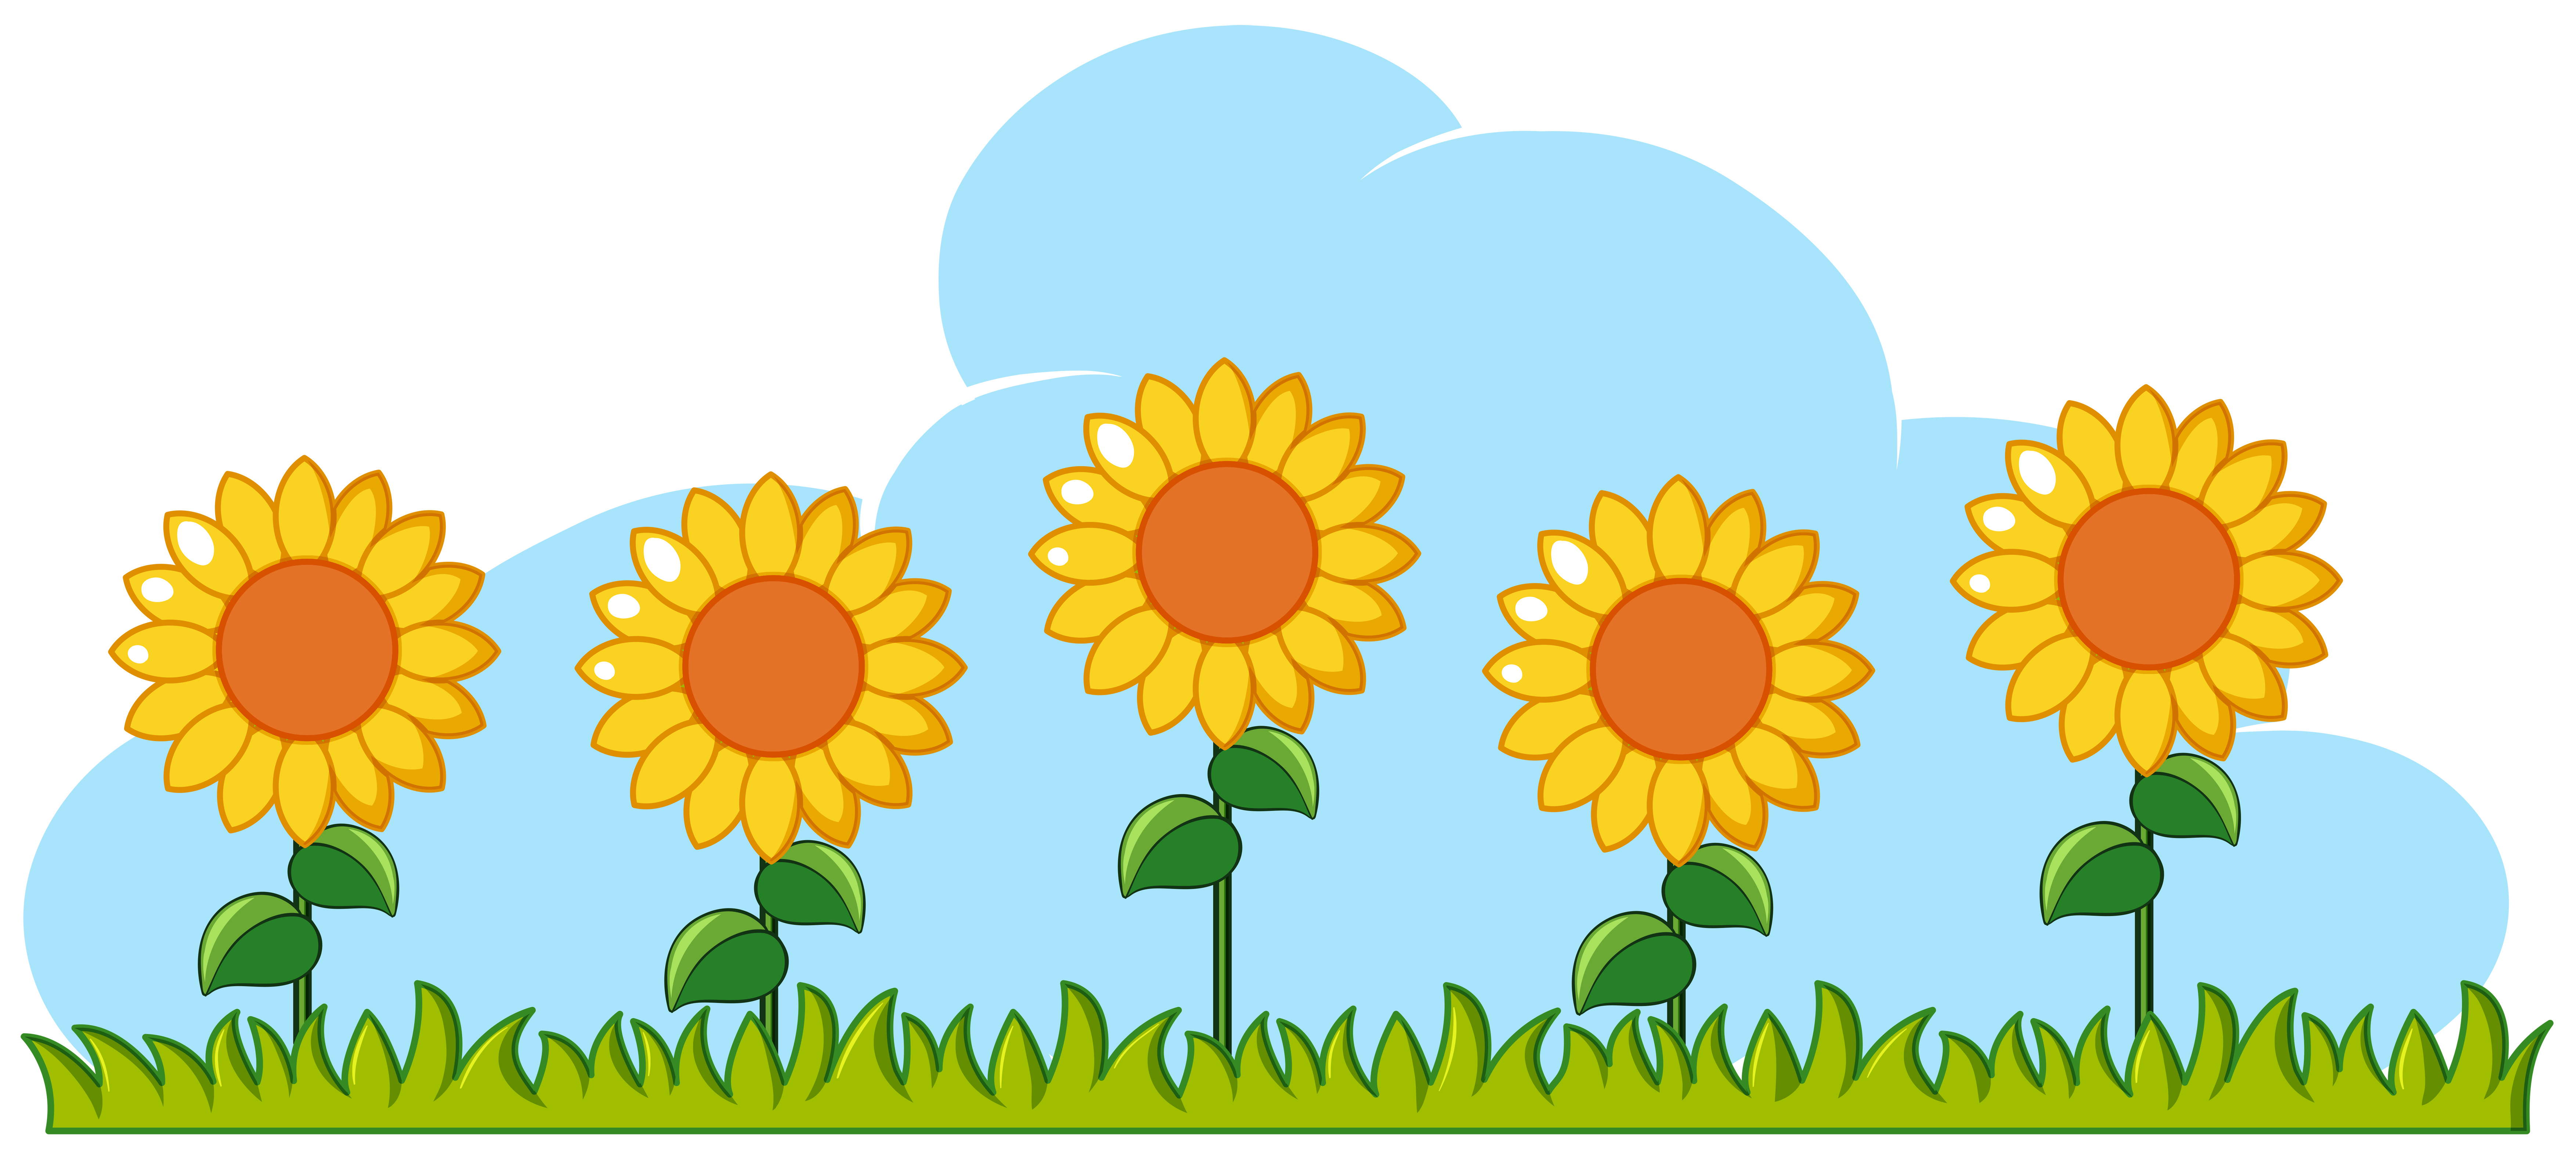 Sunflowers in garden on white background - Download Free ...